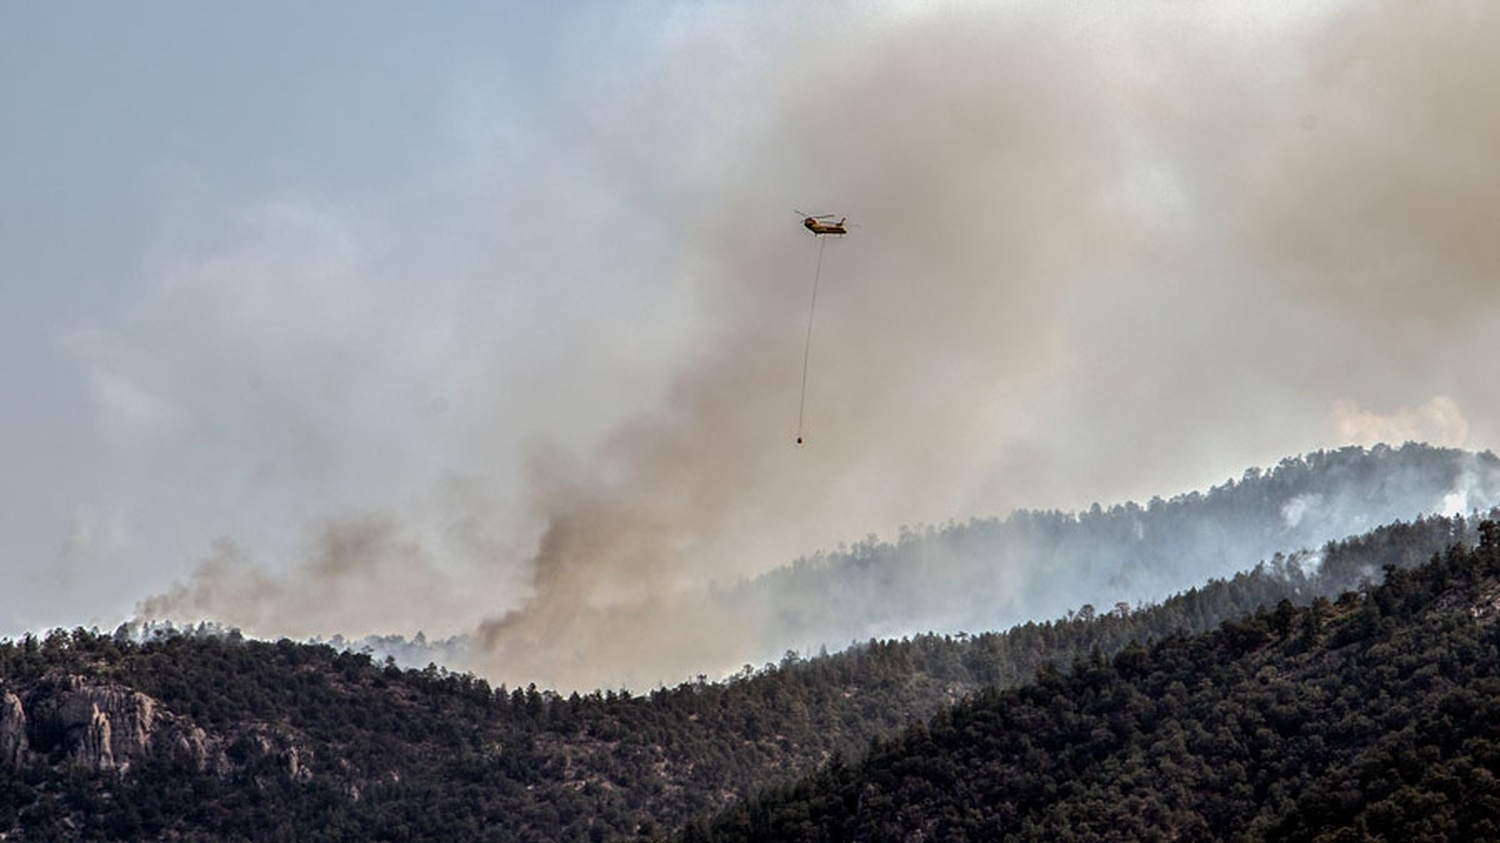 A helicopter brings water to help crews stay in control as they intentionally ignite the forest along the west edge of the Medio Fire.